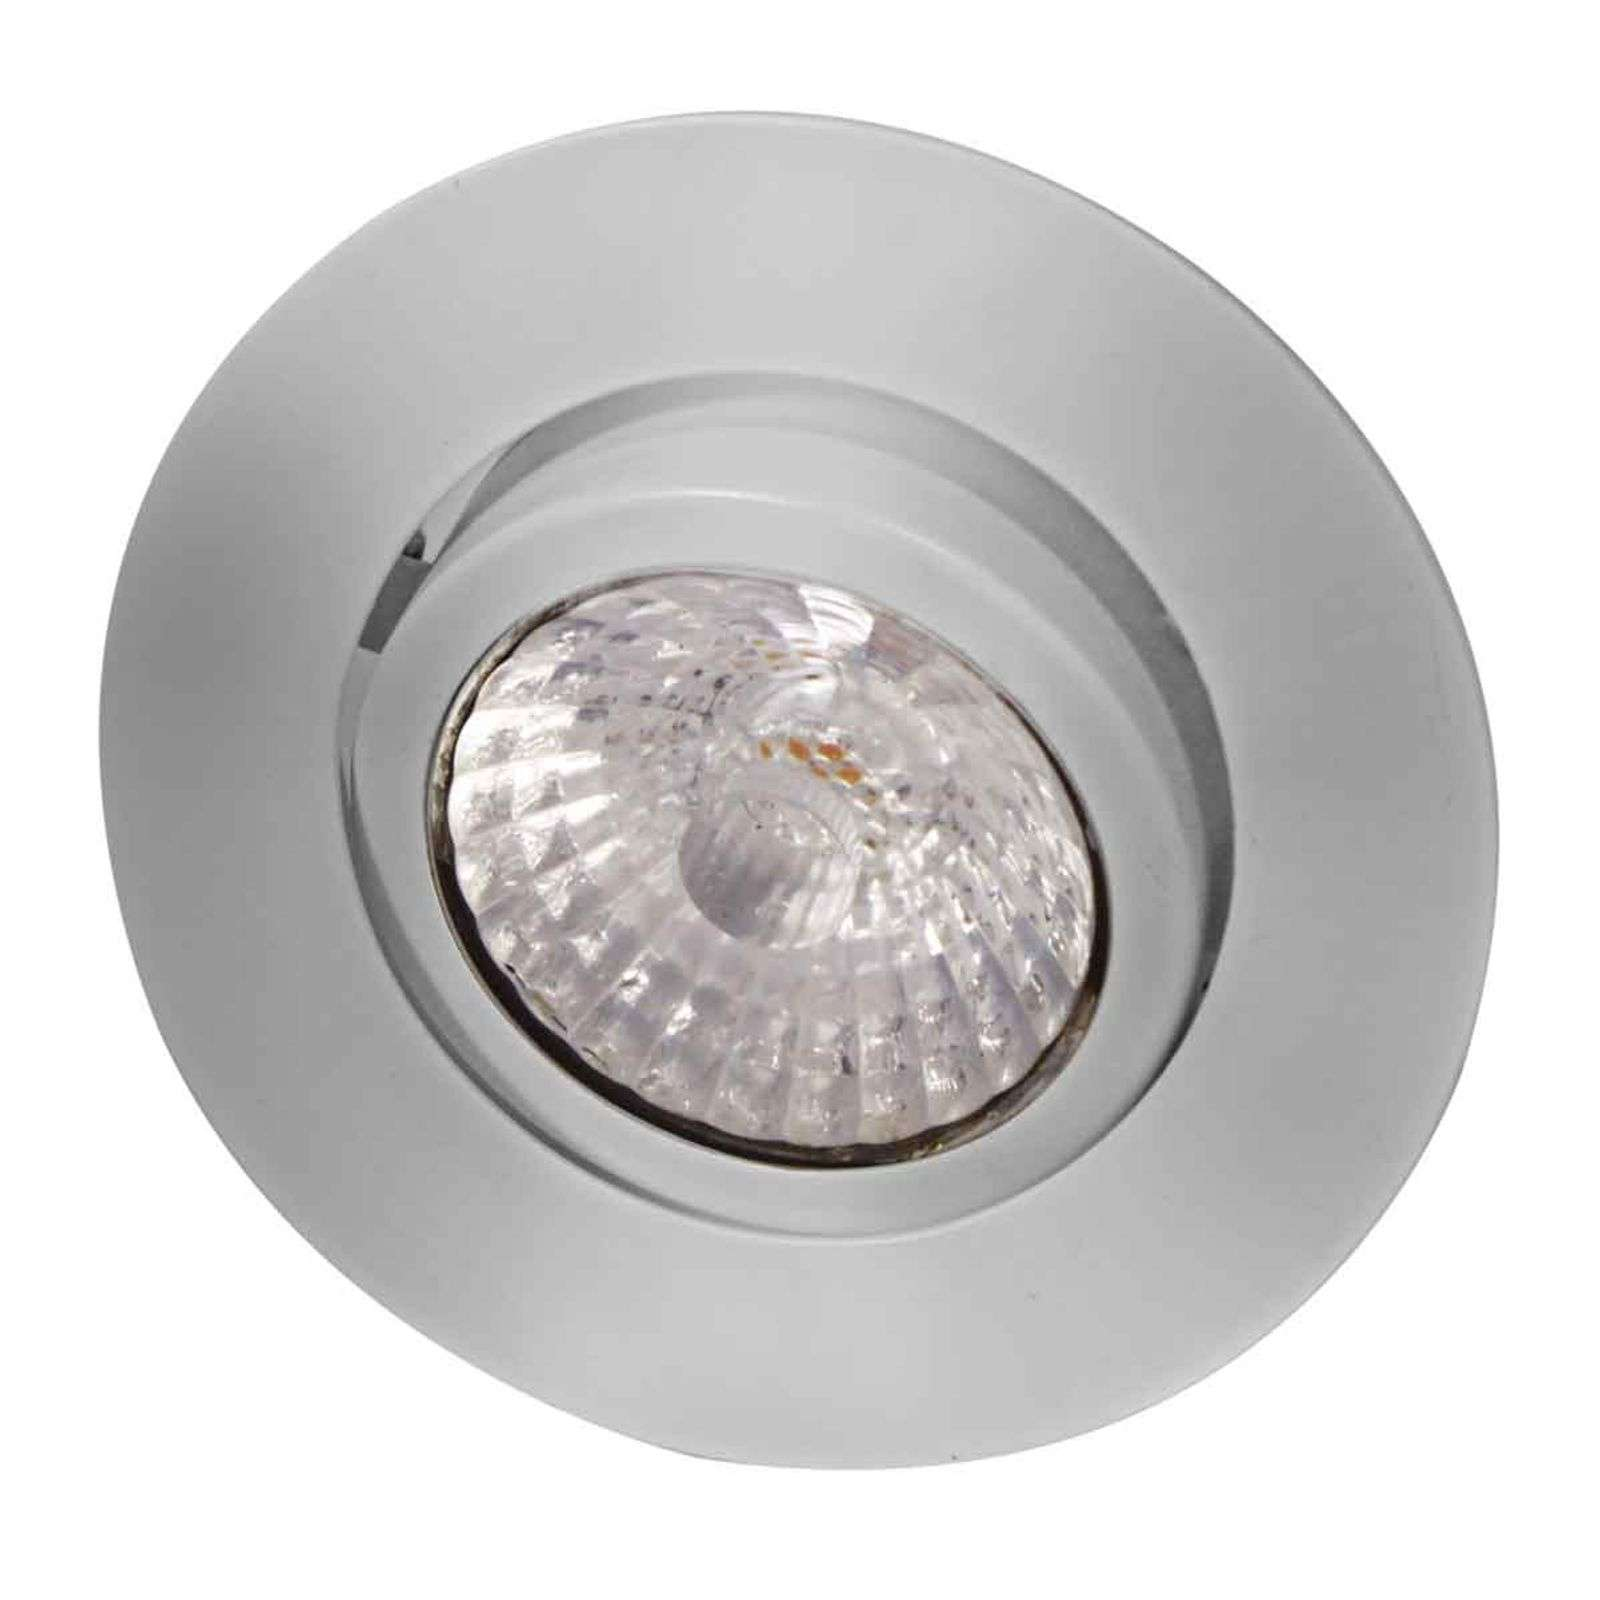 LED recessed light Rico 6.5 W brushed steel